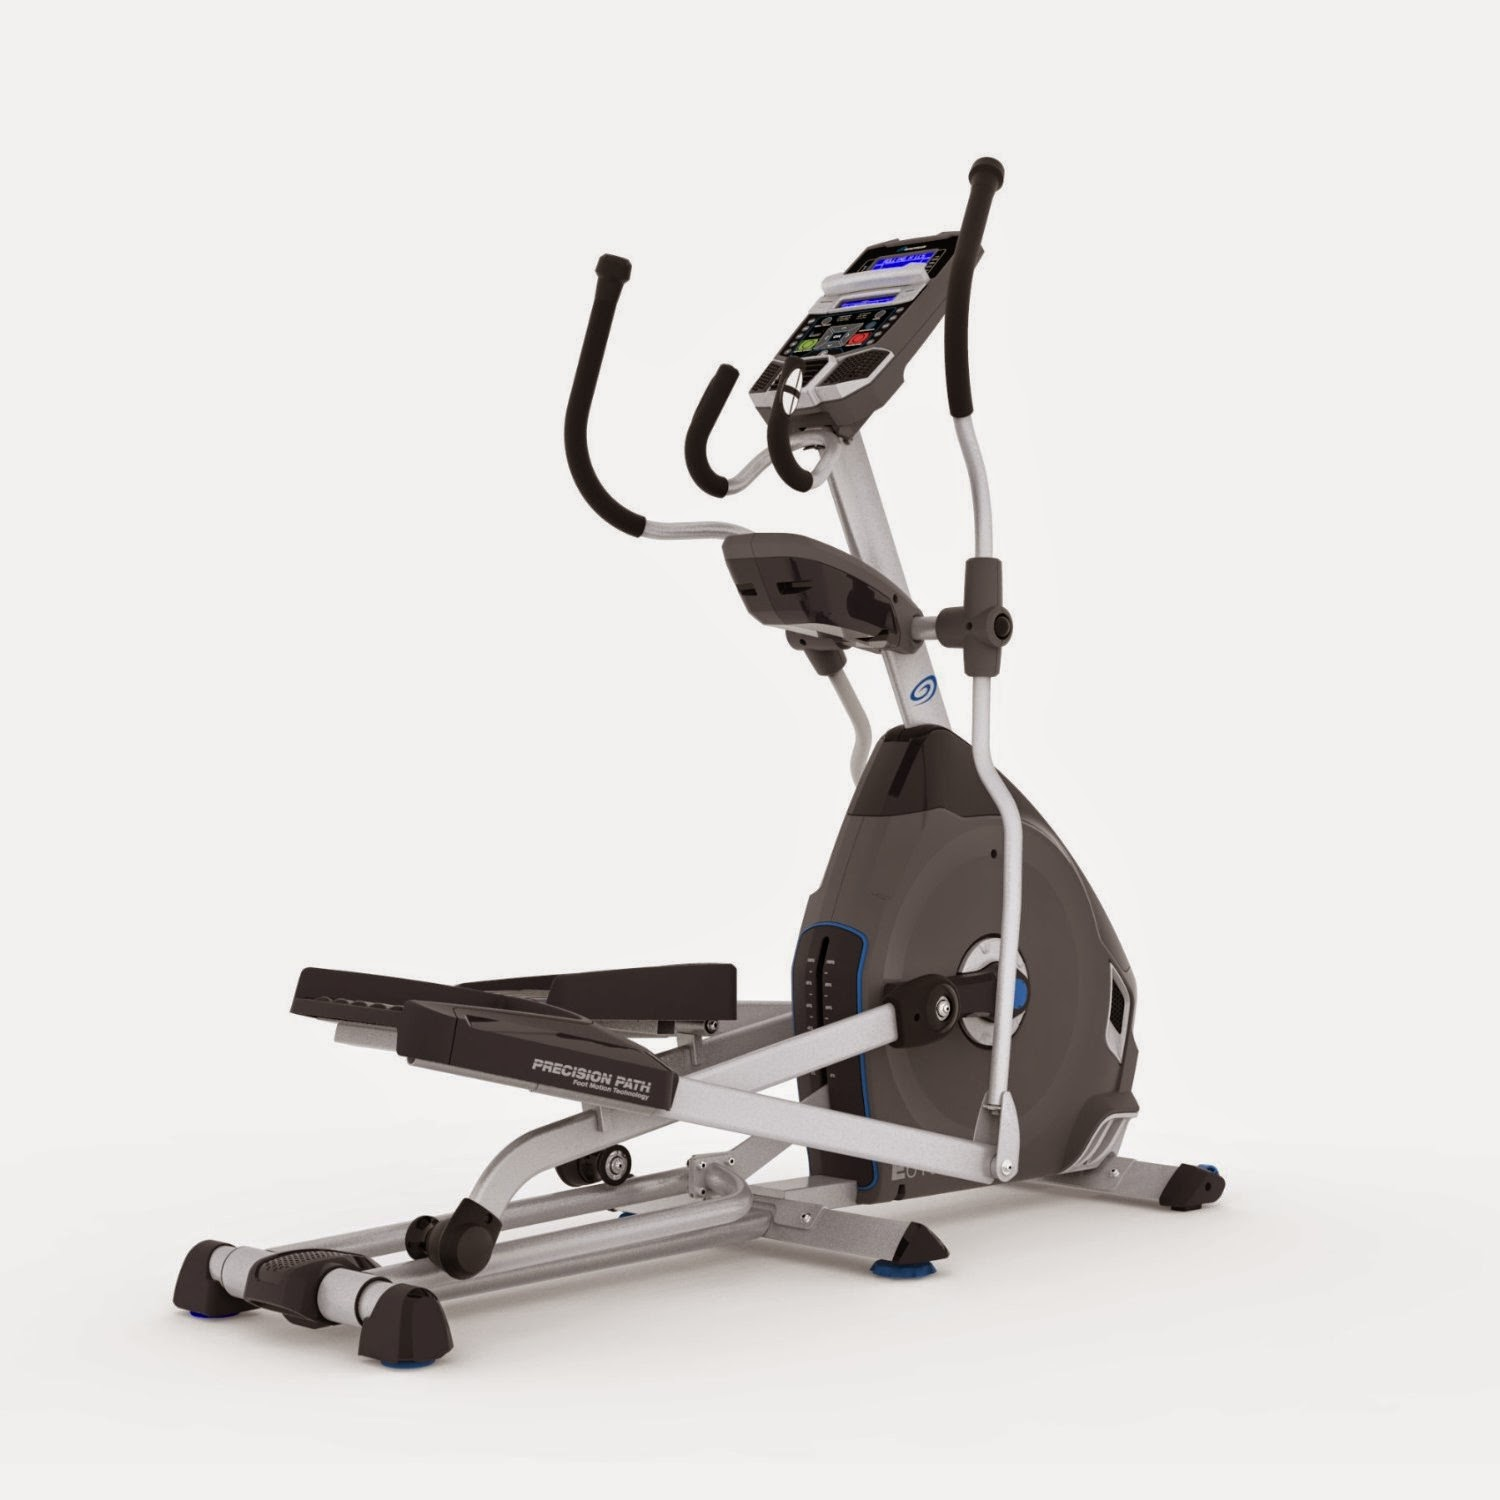 Nautilus E616 Elliptical Trainer, picture, image, review features & specifications, compare with Nautilus E614